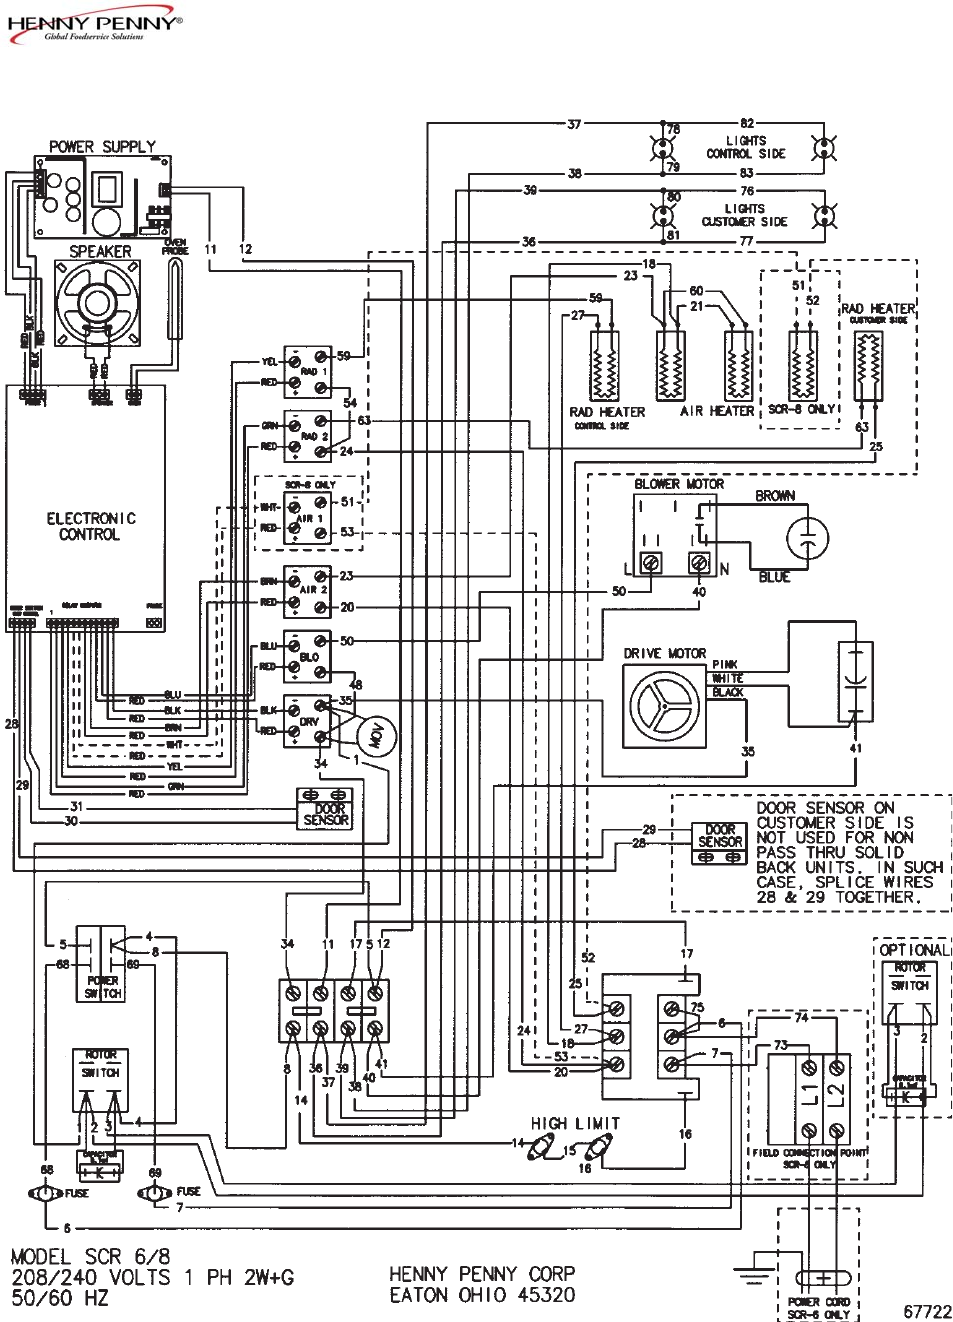 Wiring Diagram For Zanussi Cooker furthermore Electrical System furthermore 420cc Predator Engine Carburetor Diagram moreover Narva Wiring Diagram Trailer Plug as well Volvo Xc90 Wiring Diagram Pdf. on 7 pin small round trailer plug wiring diagram